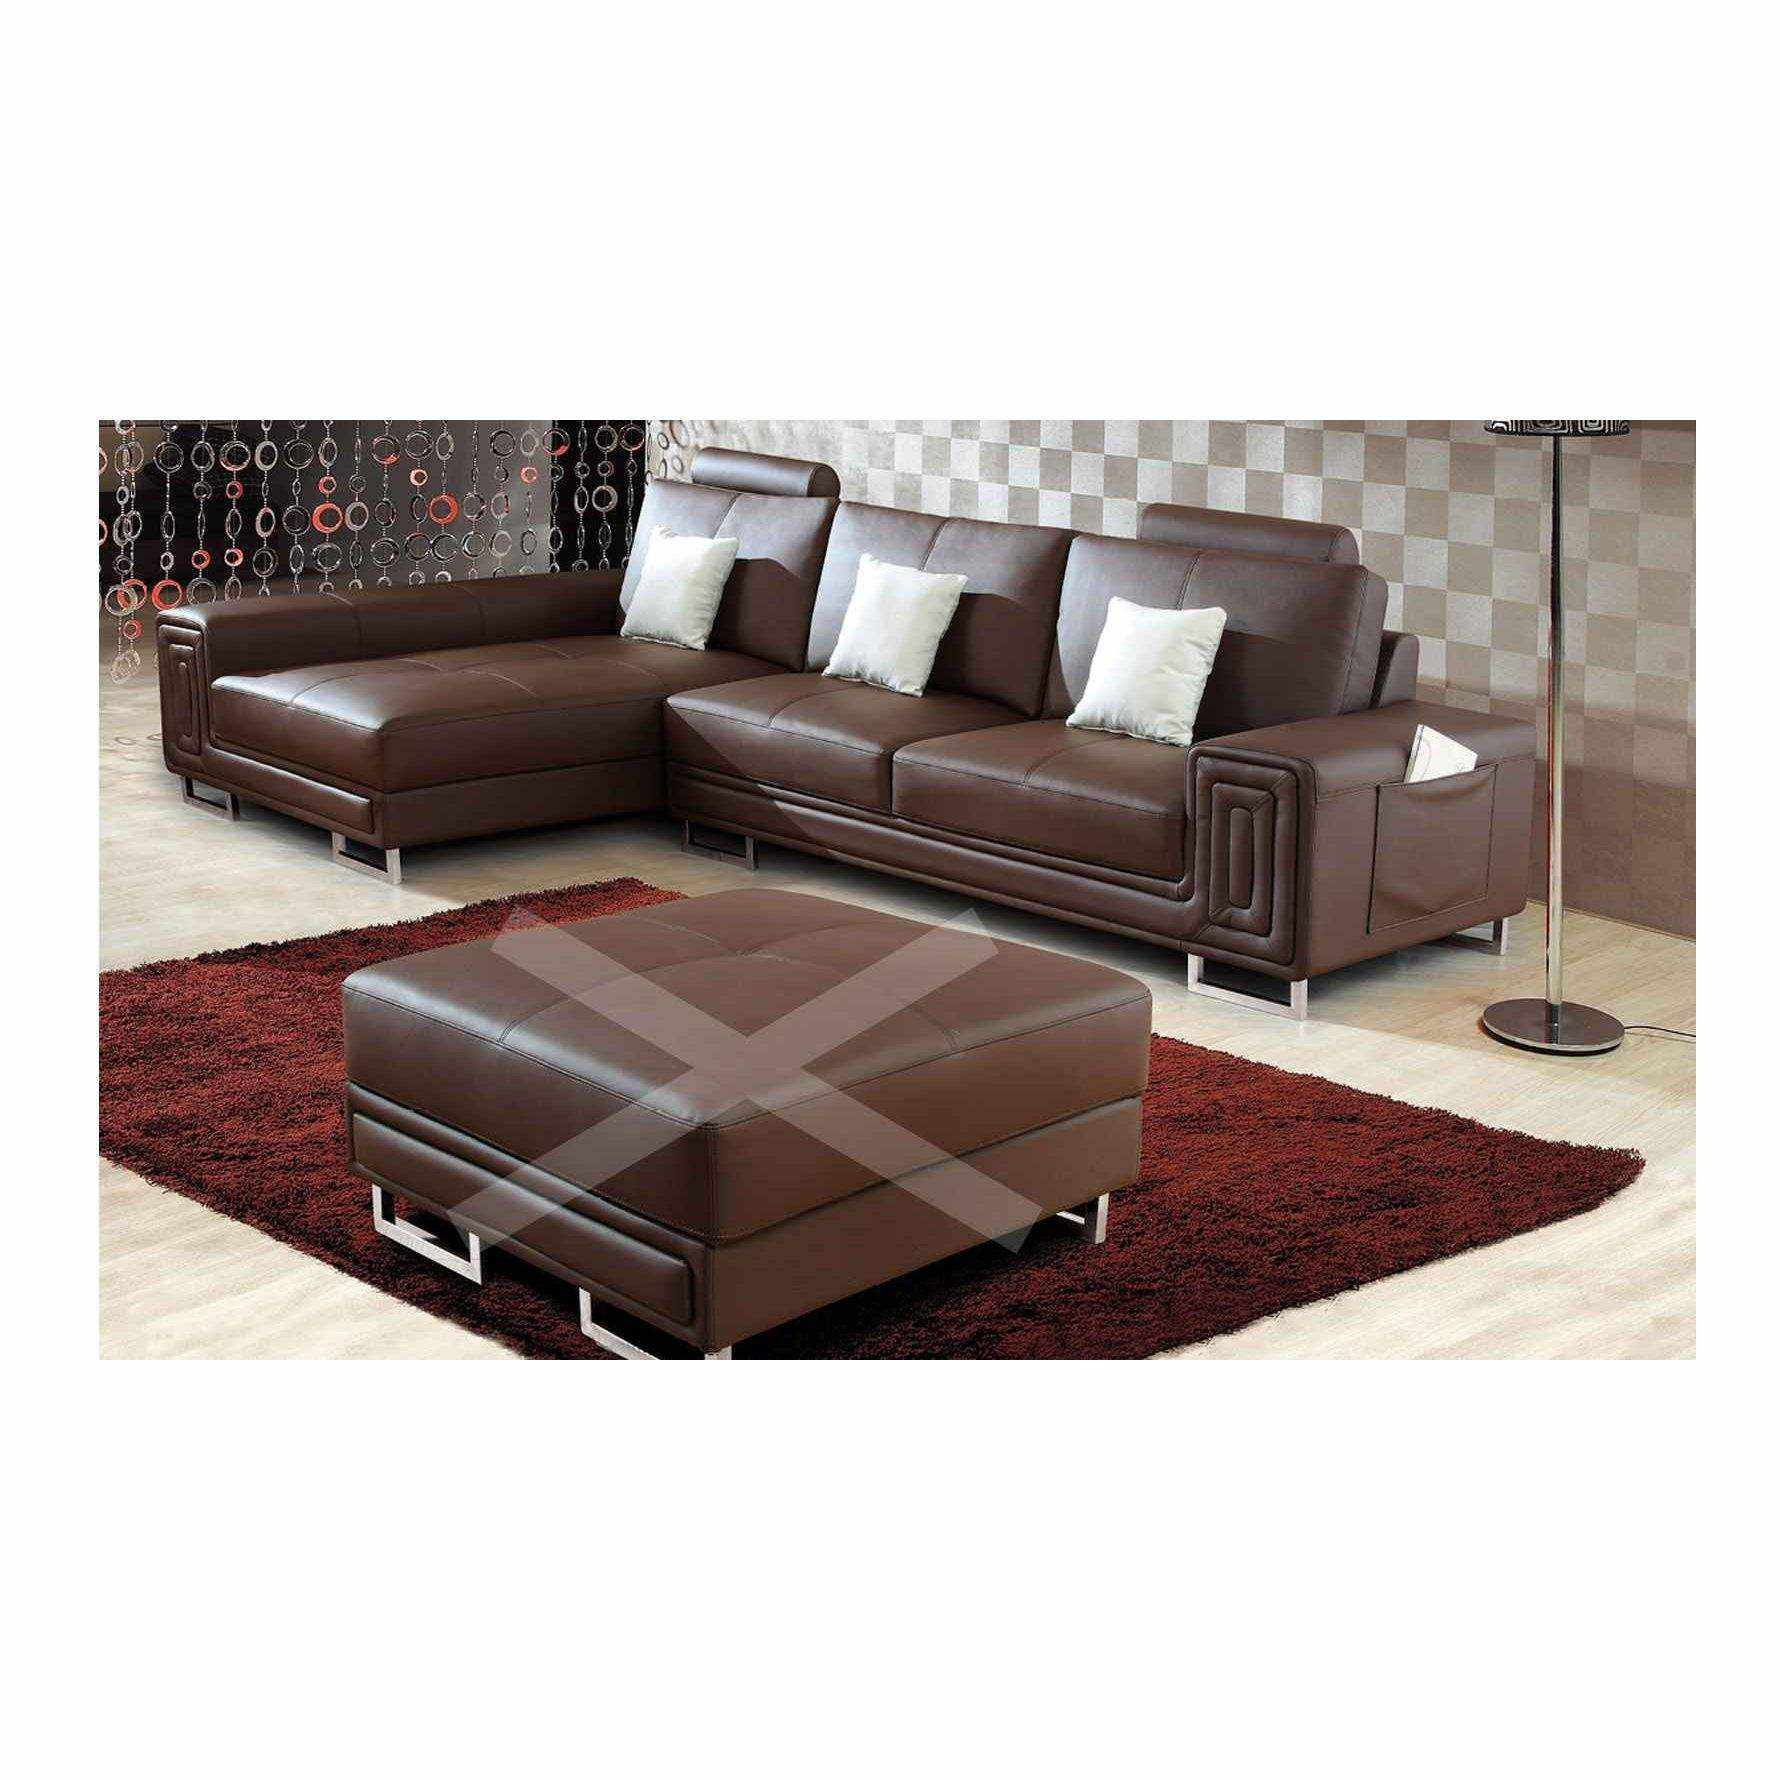 Deco in paris canape cuir d angle marron tetieres relax oxford can anglegau - Canape angle contemporain ...